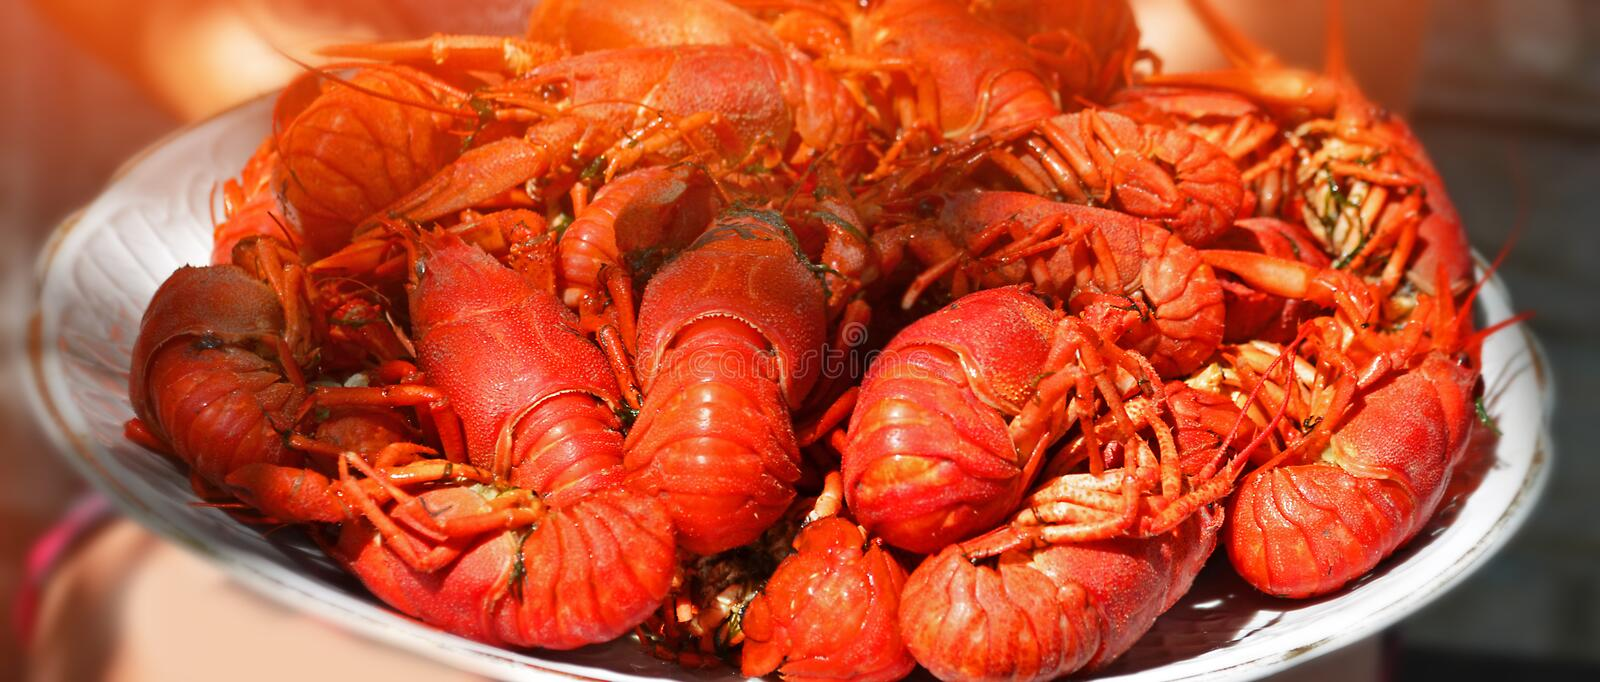 Big plate of tasty boiled crawfish closeup, seafood. Lobster atlantic food royalty free stock photo